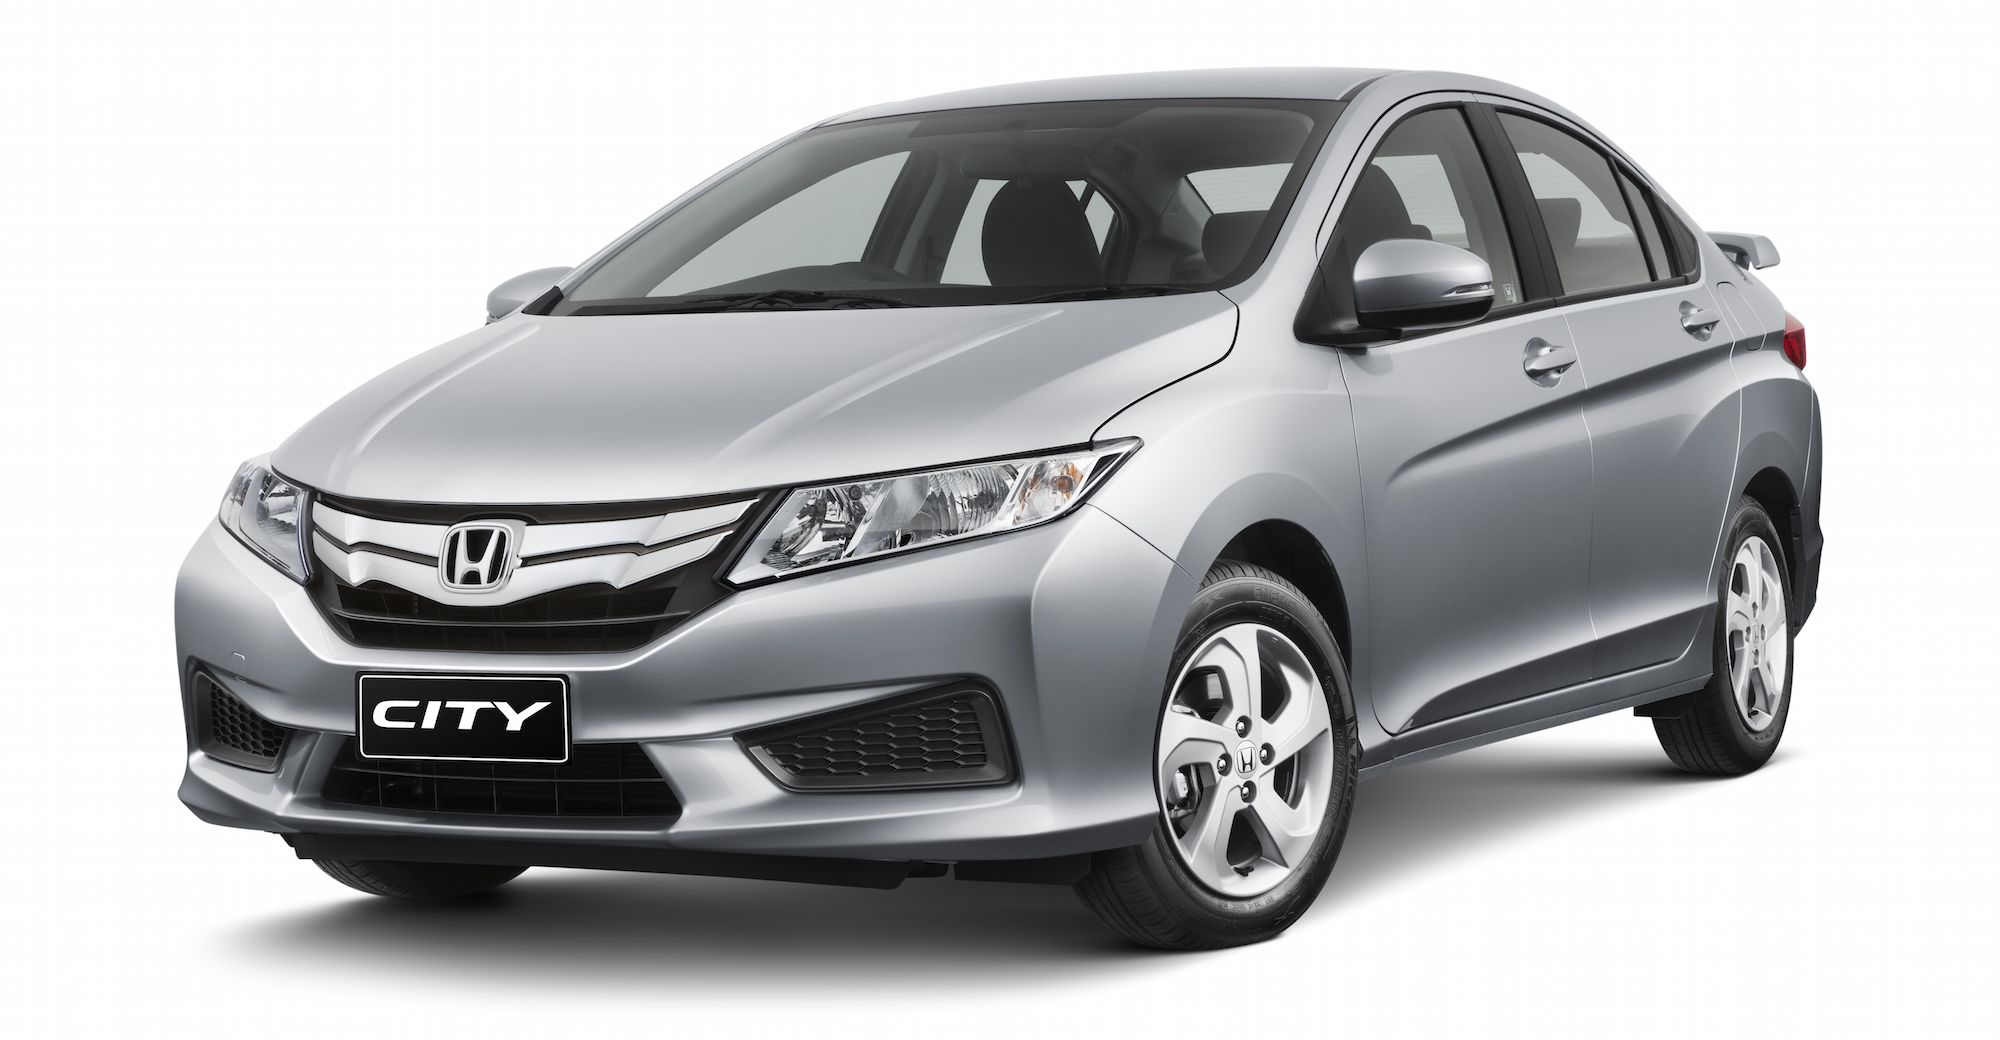 2015 Honda City Limited Edition Arrives In Australia Price Already